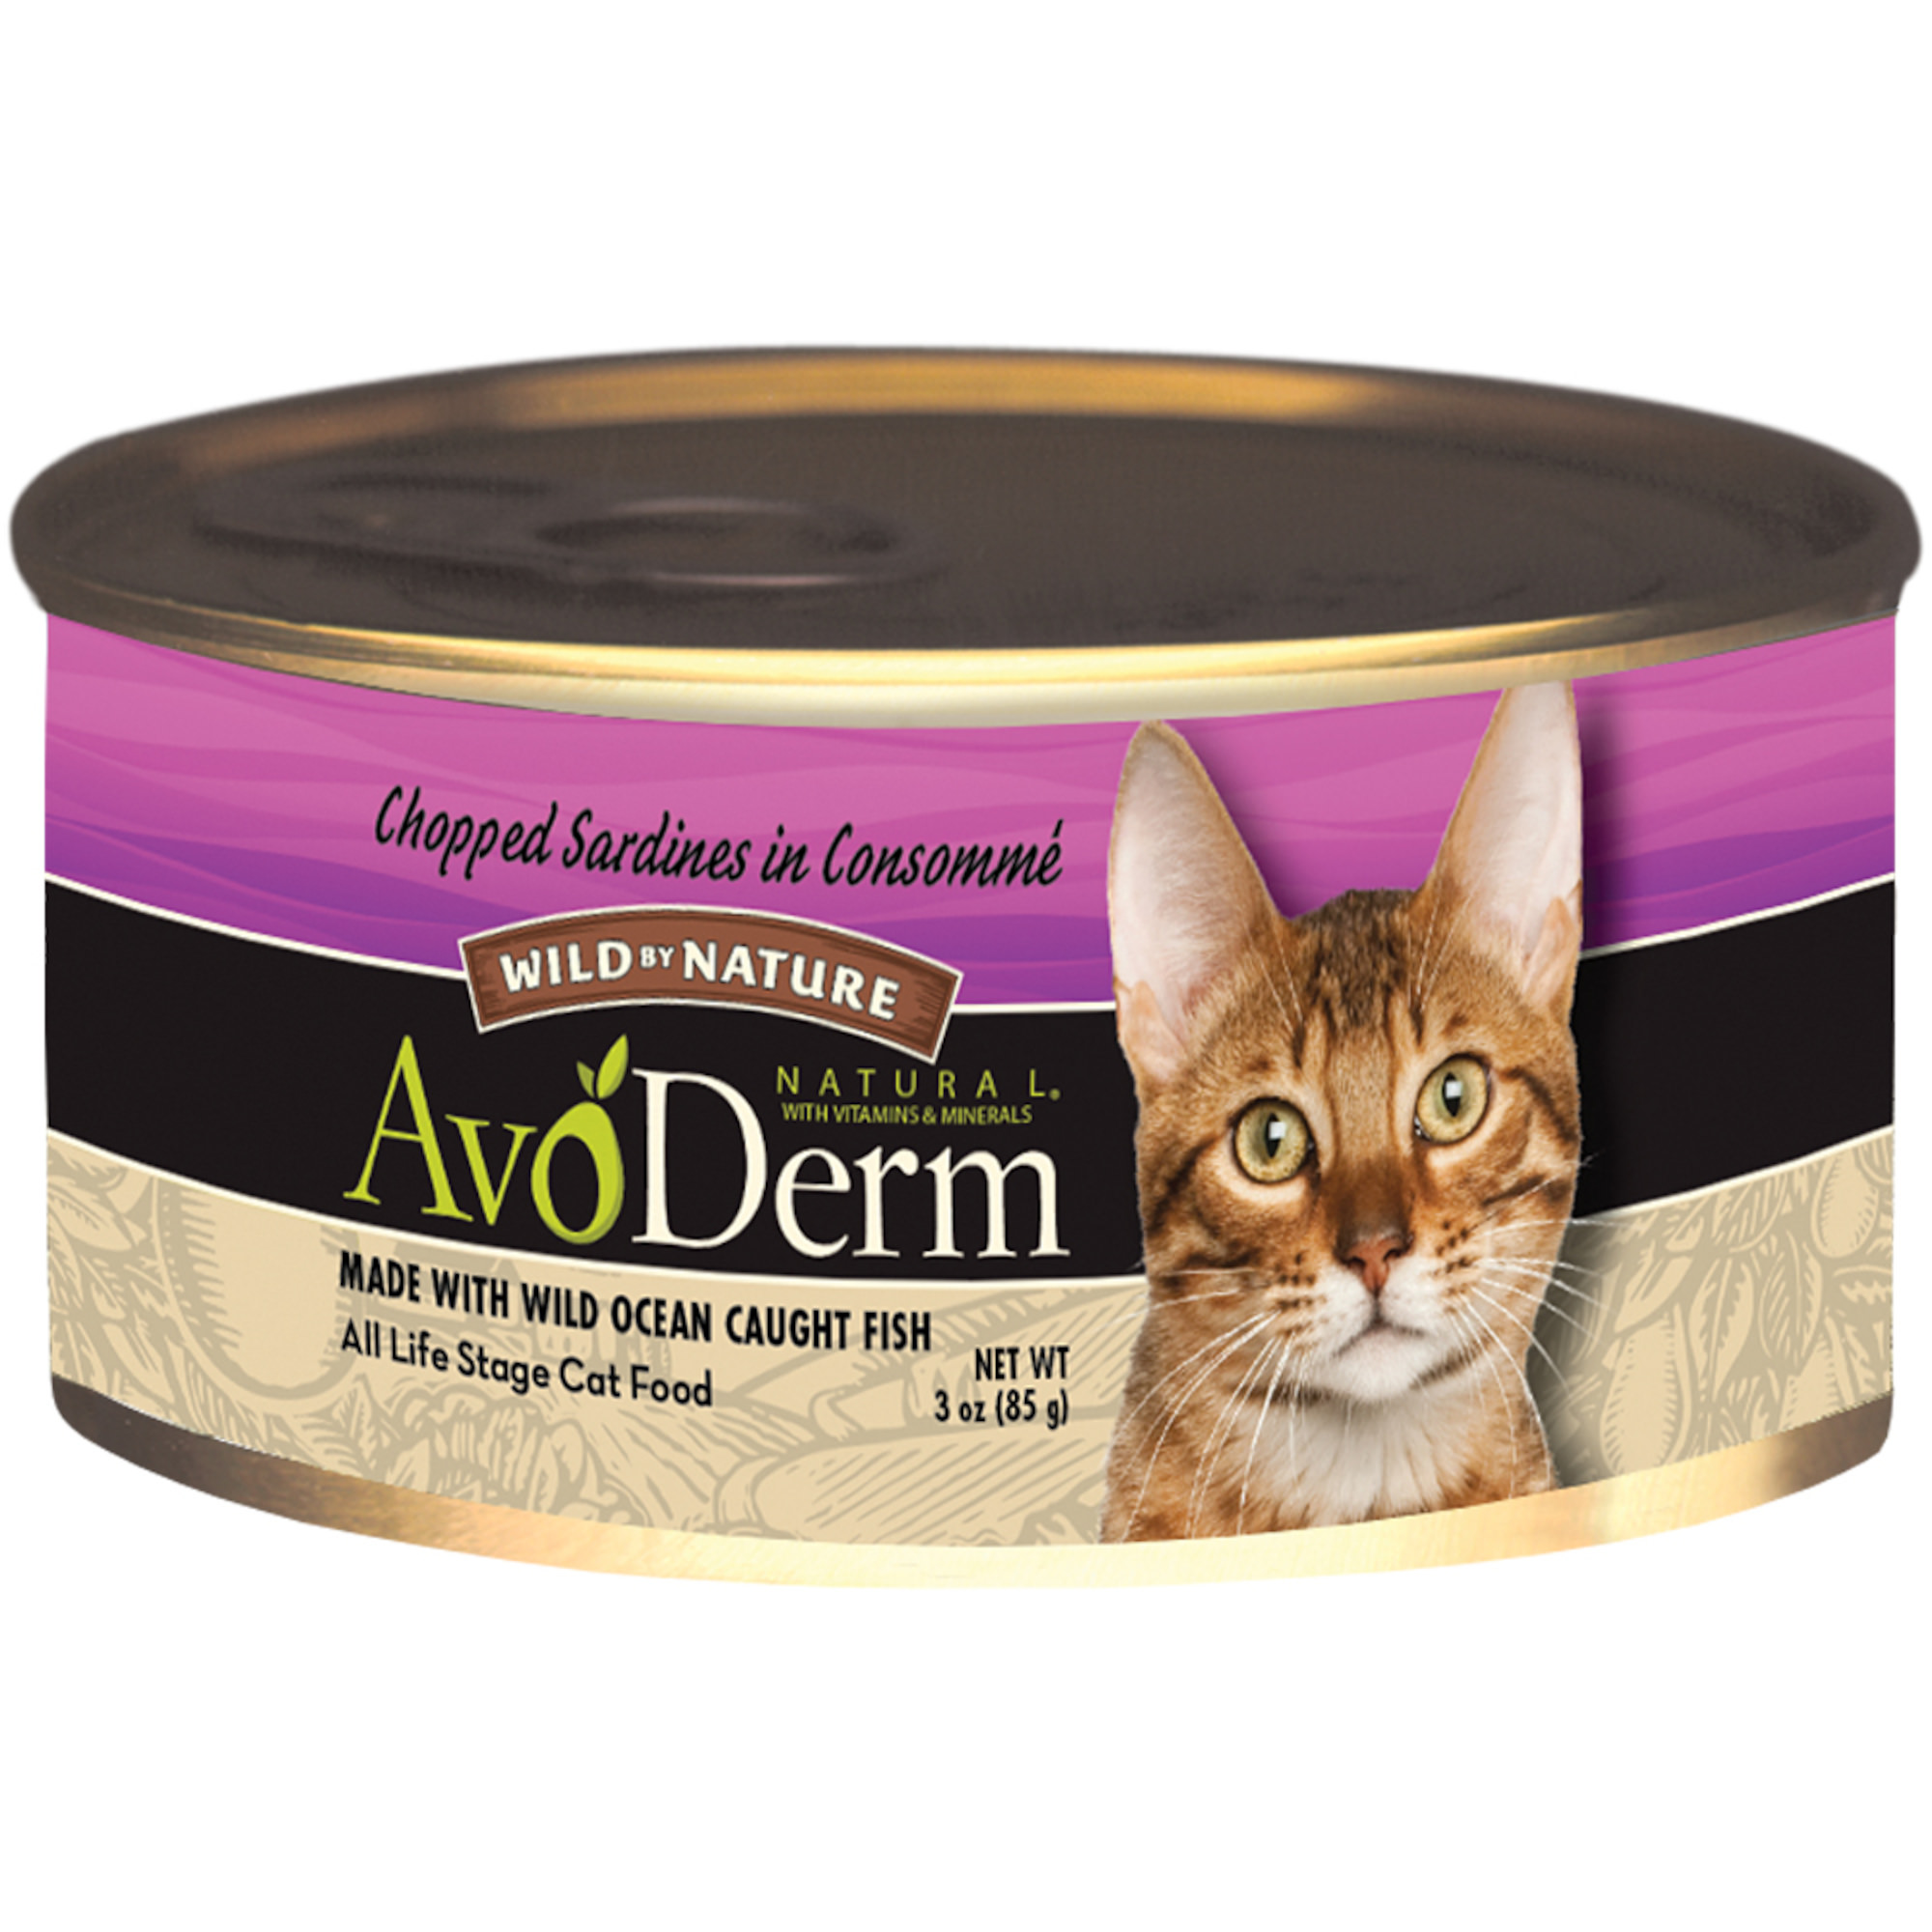 AvoDerm Natural Wild by Nature Chopped Sardines in Consomme Cat Food, 3-Ounce Can